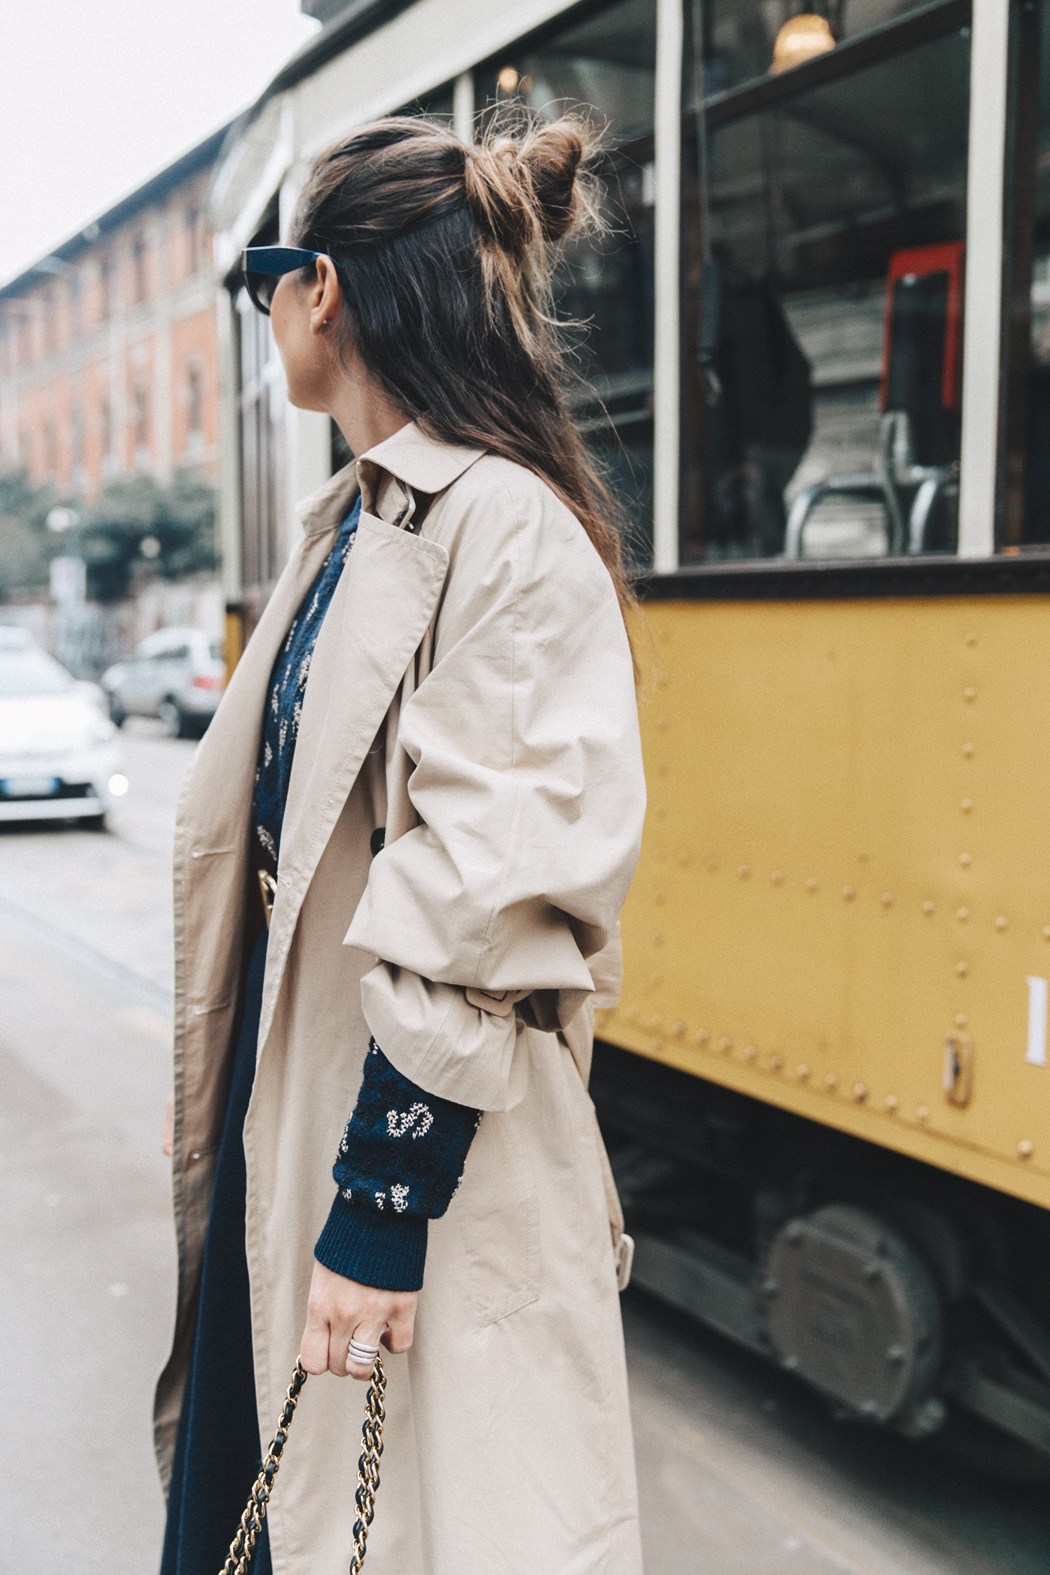 Trench_Edited-Leopard_Sweater-Midi_Skirt-Chanel_Slingback_Shoes-Chanel_Vintage_Bag-Ouftit_Streetstyle-24